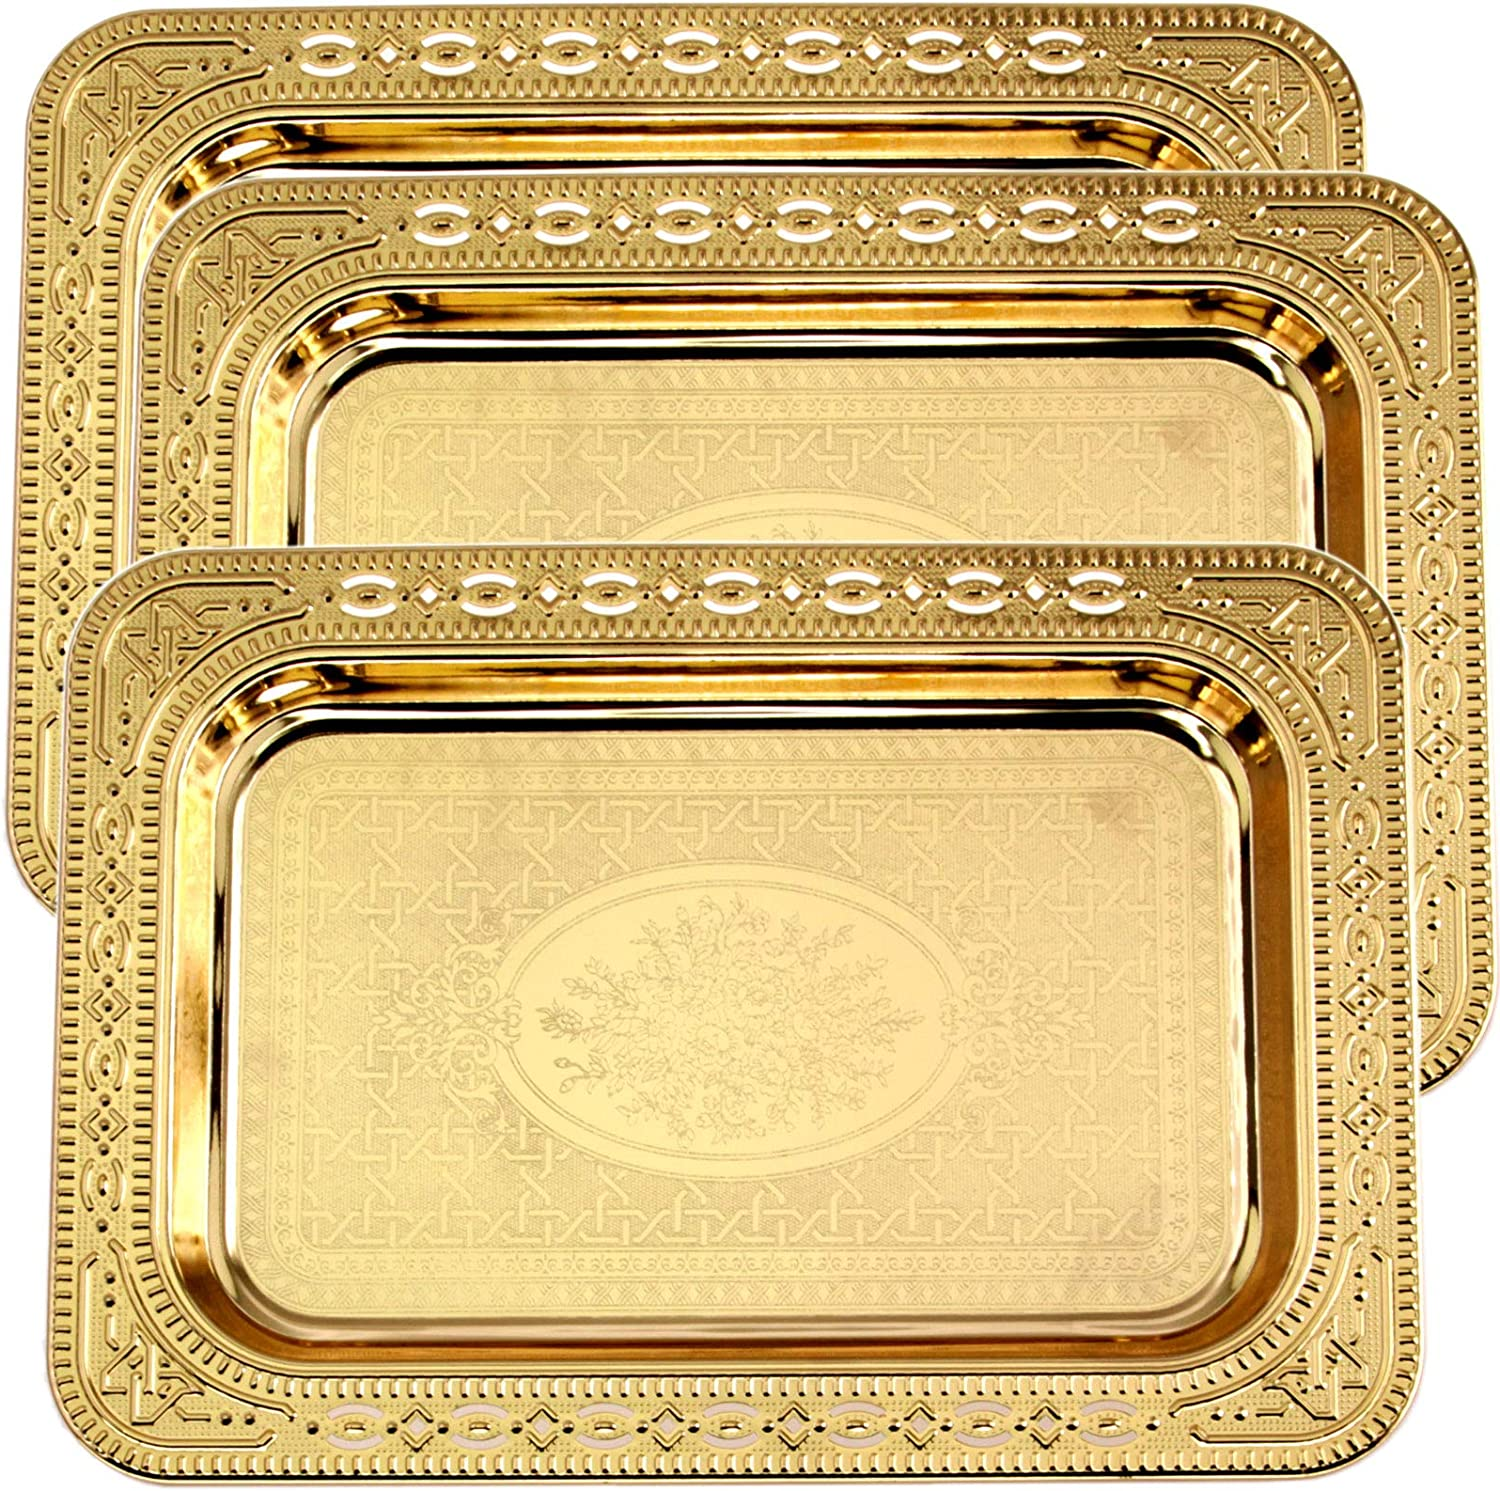 Maro Megastore (Pack of 3) 11.6 Inch x 8.3 Inch Oblong Iron Gold Plated Serving Tray Leaf Floral Edge Decorative Party Birthday Wedding Dessert Buffet Wine Candle Decor Platter Plate Base Dish CC-968